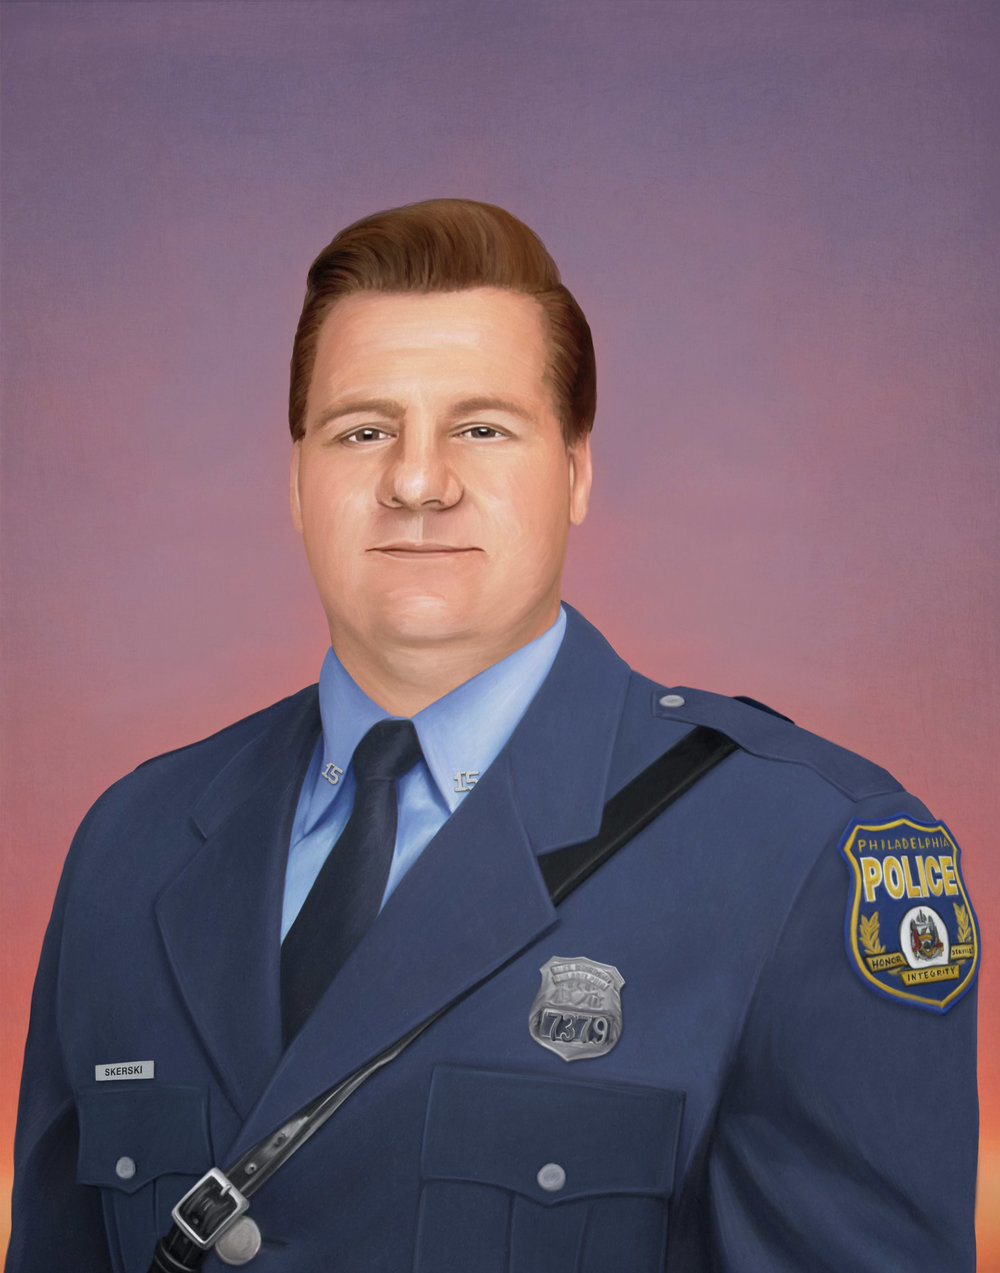 A PHILADELPHIA HERO - PORTRAIT OF POLICE OFFICER GARY SKERSKI, PO